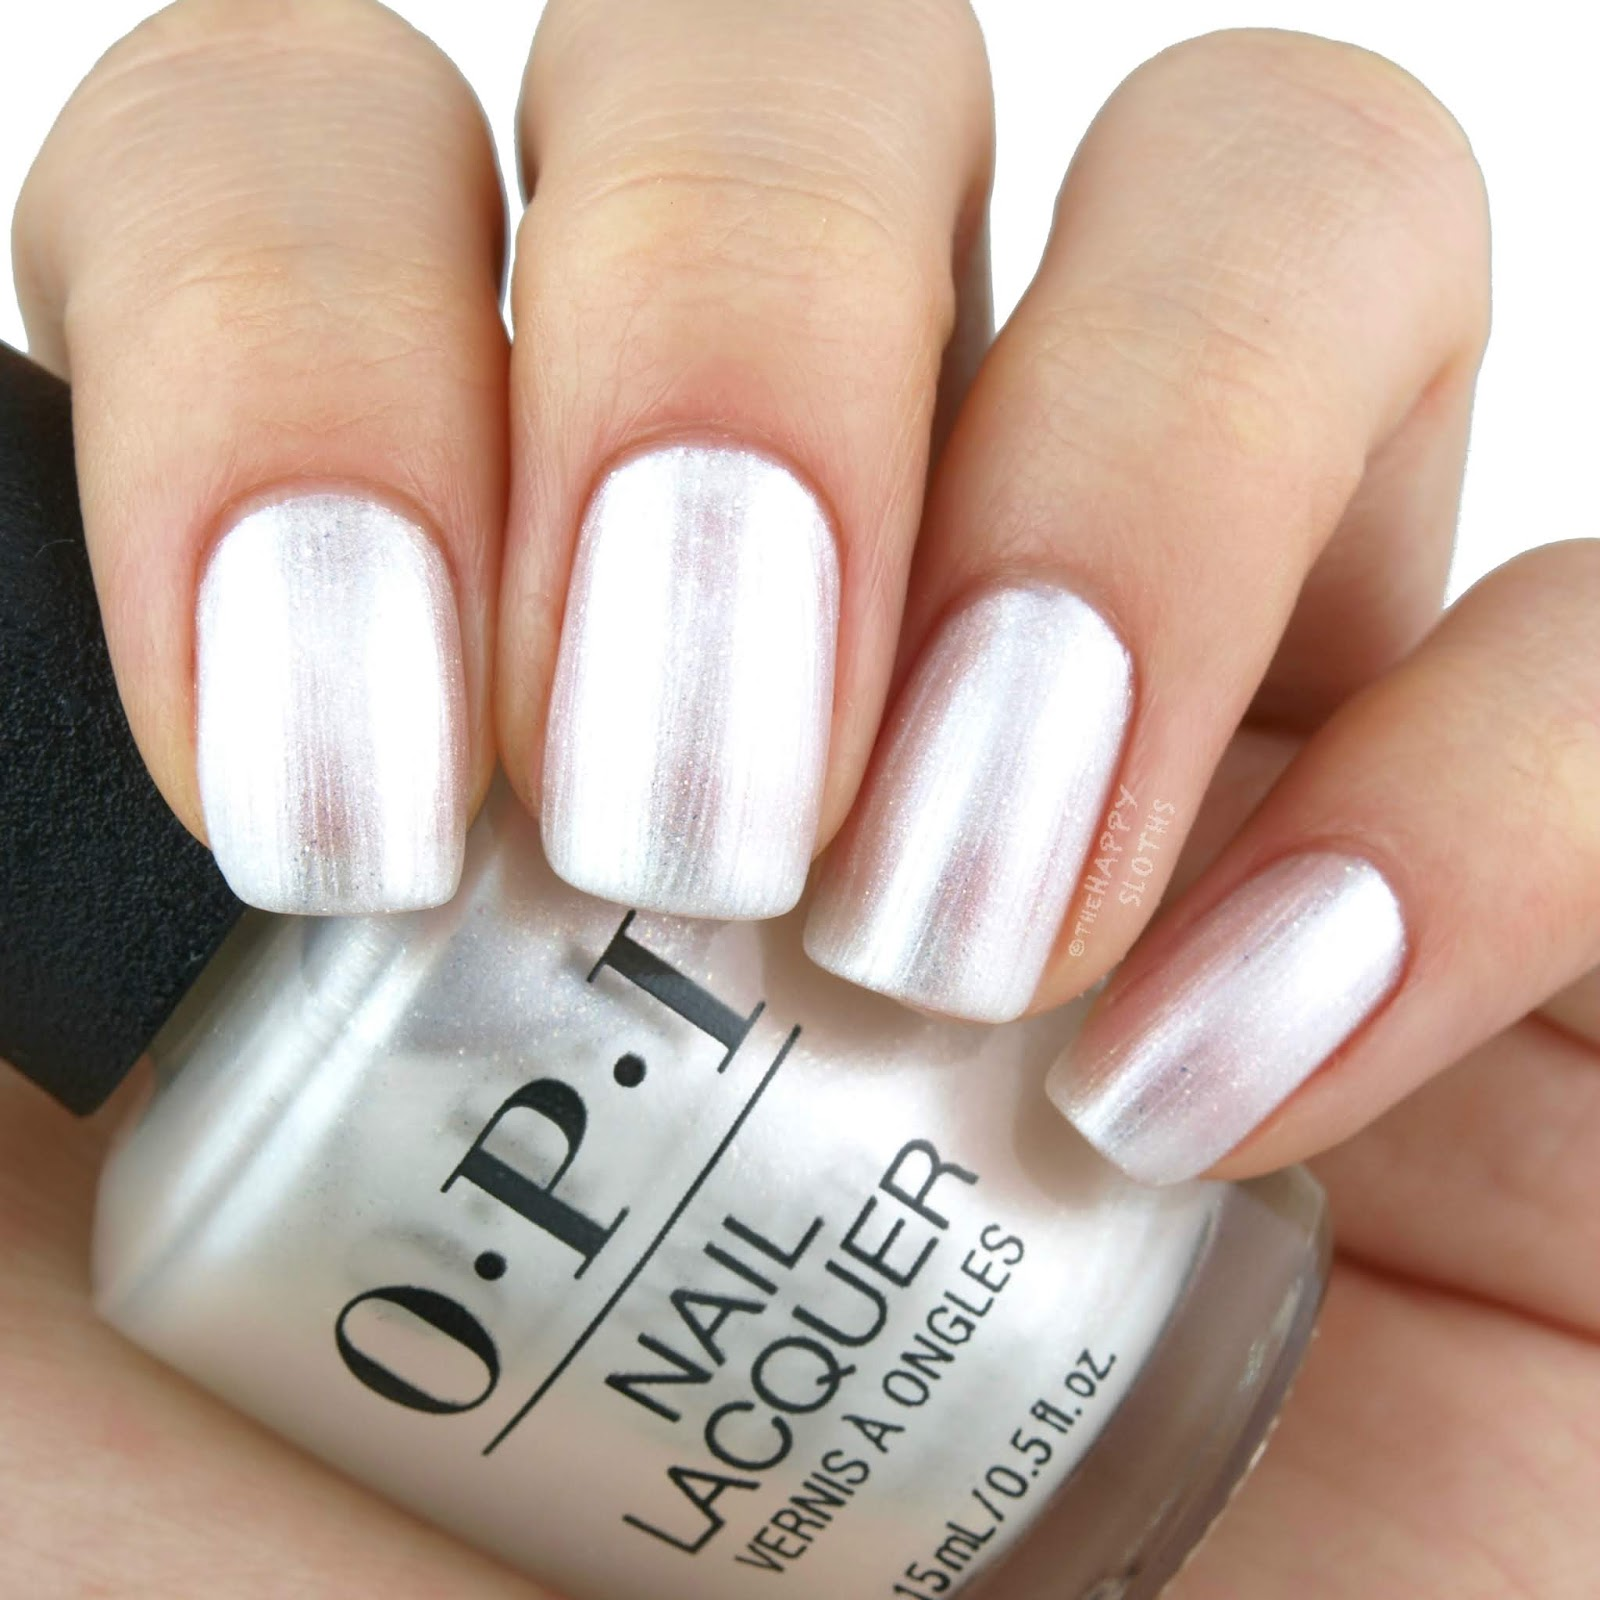 OPI   Holiday 2018 Nutcracker Collection   Dancing Keeps Me on My Toes: Review and Swatches